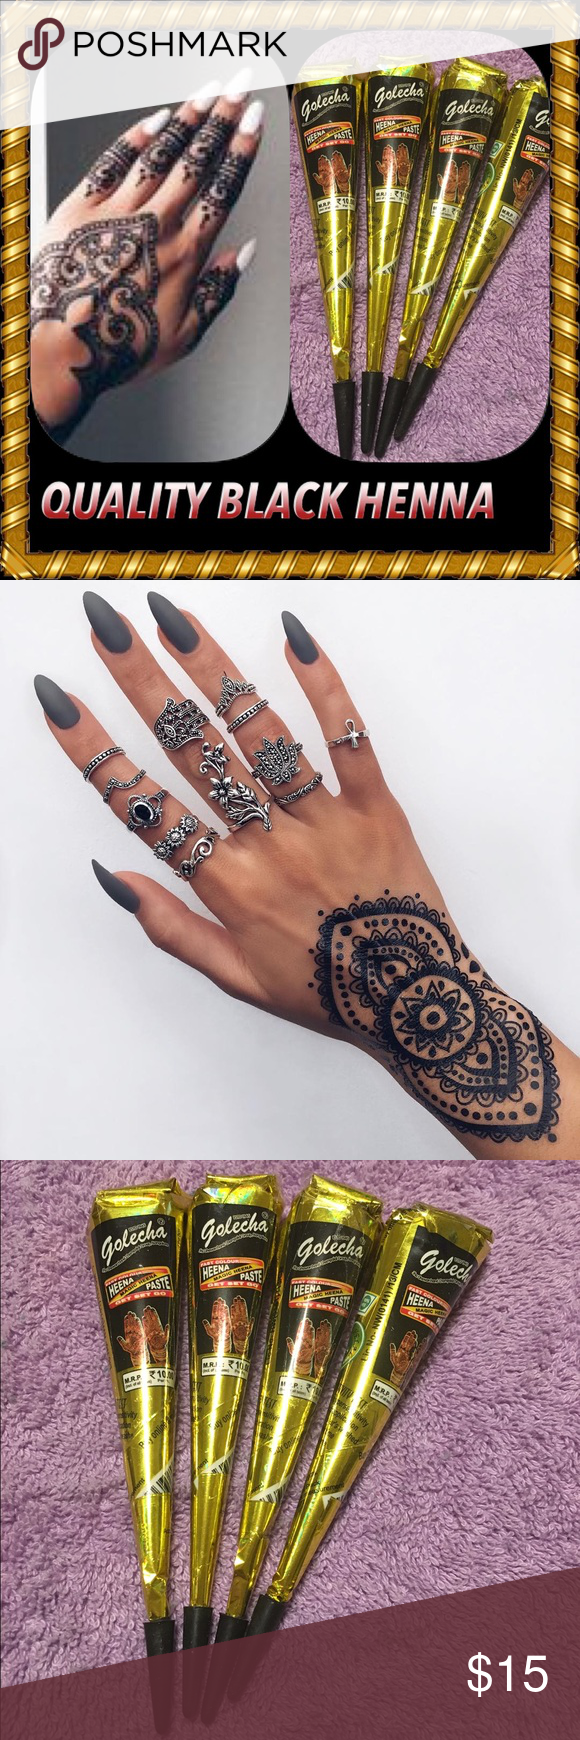 High Quality Authentic Black Henna Ink 4 Cones Boutique My Posh